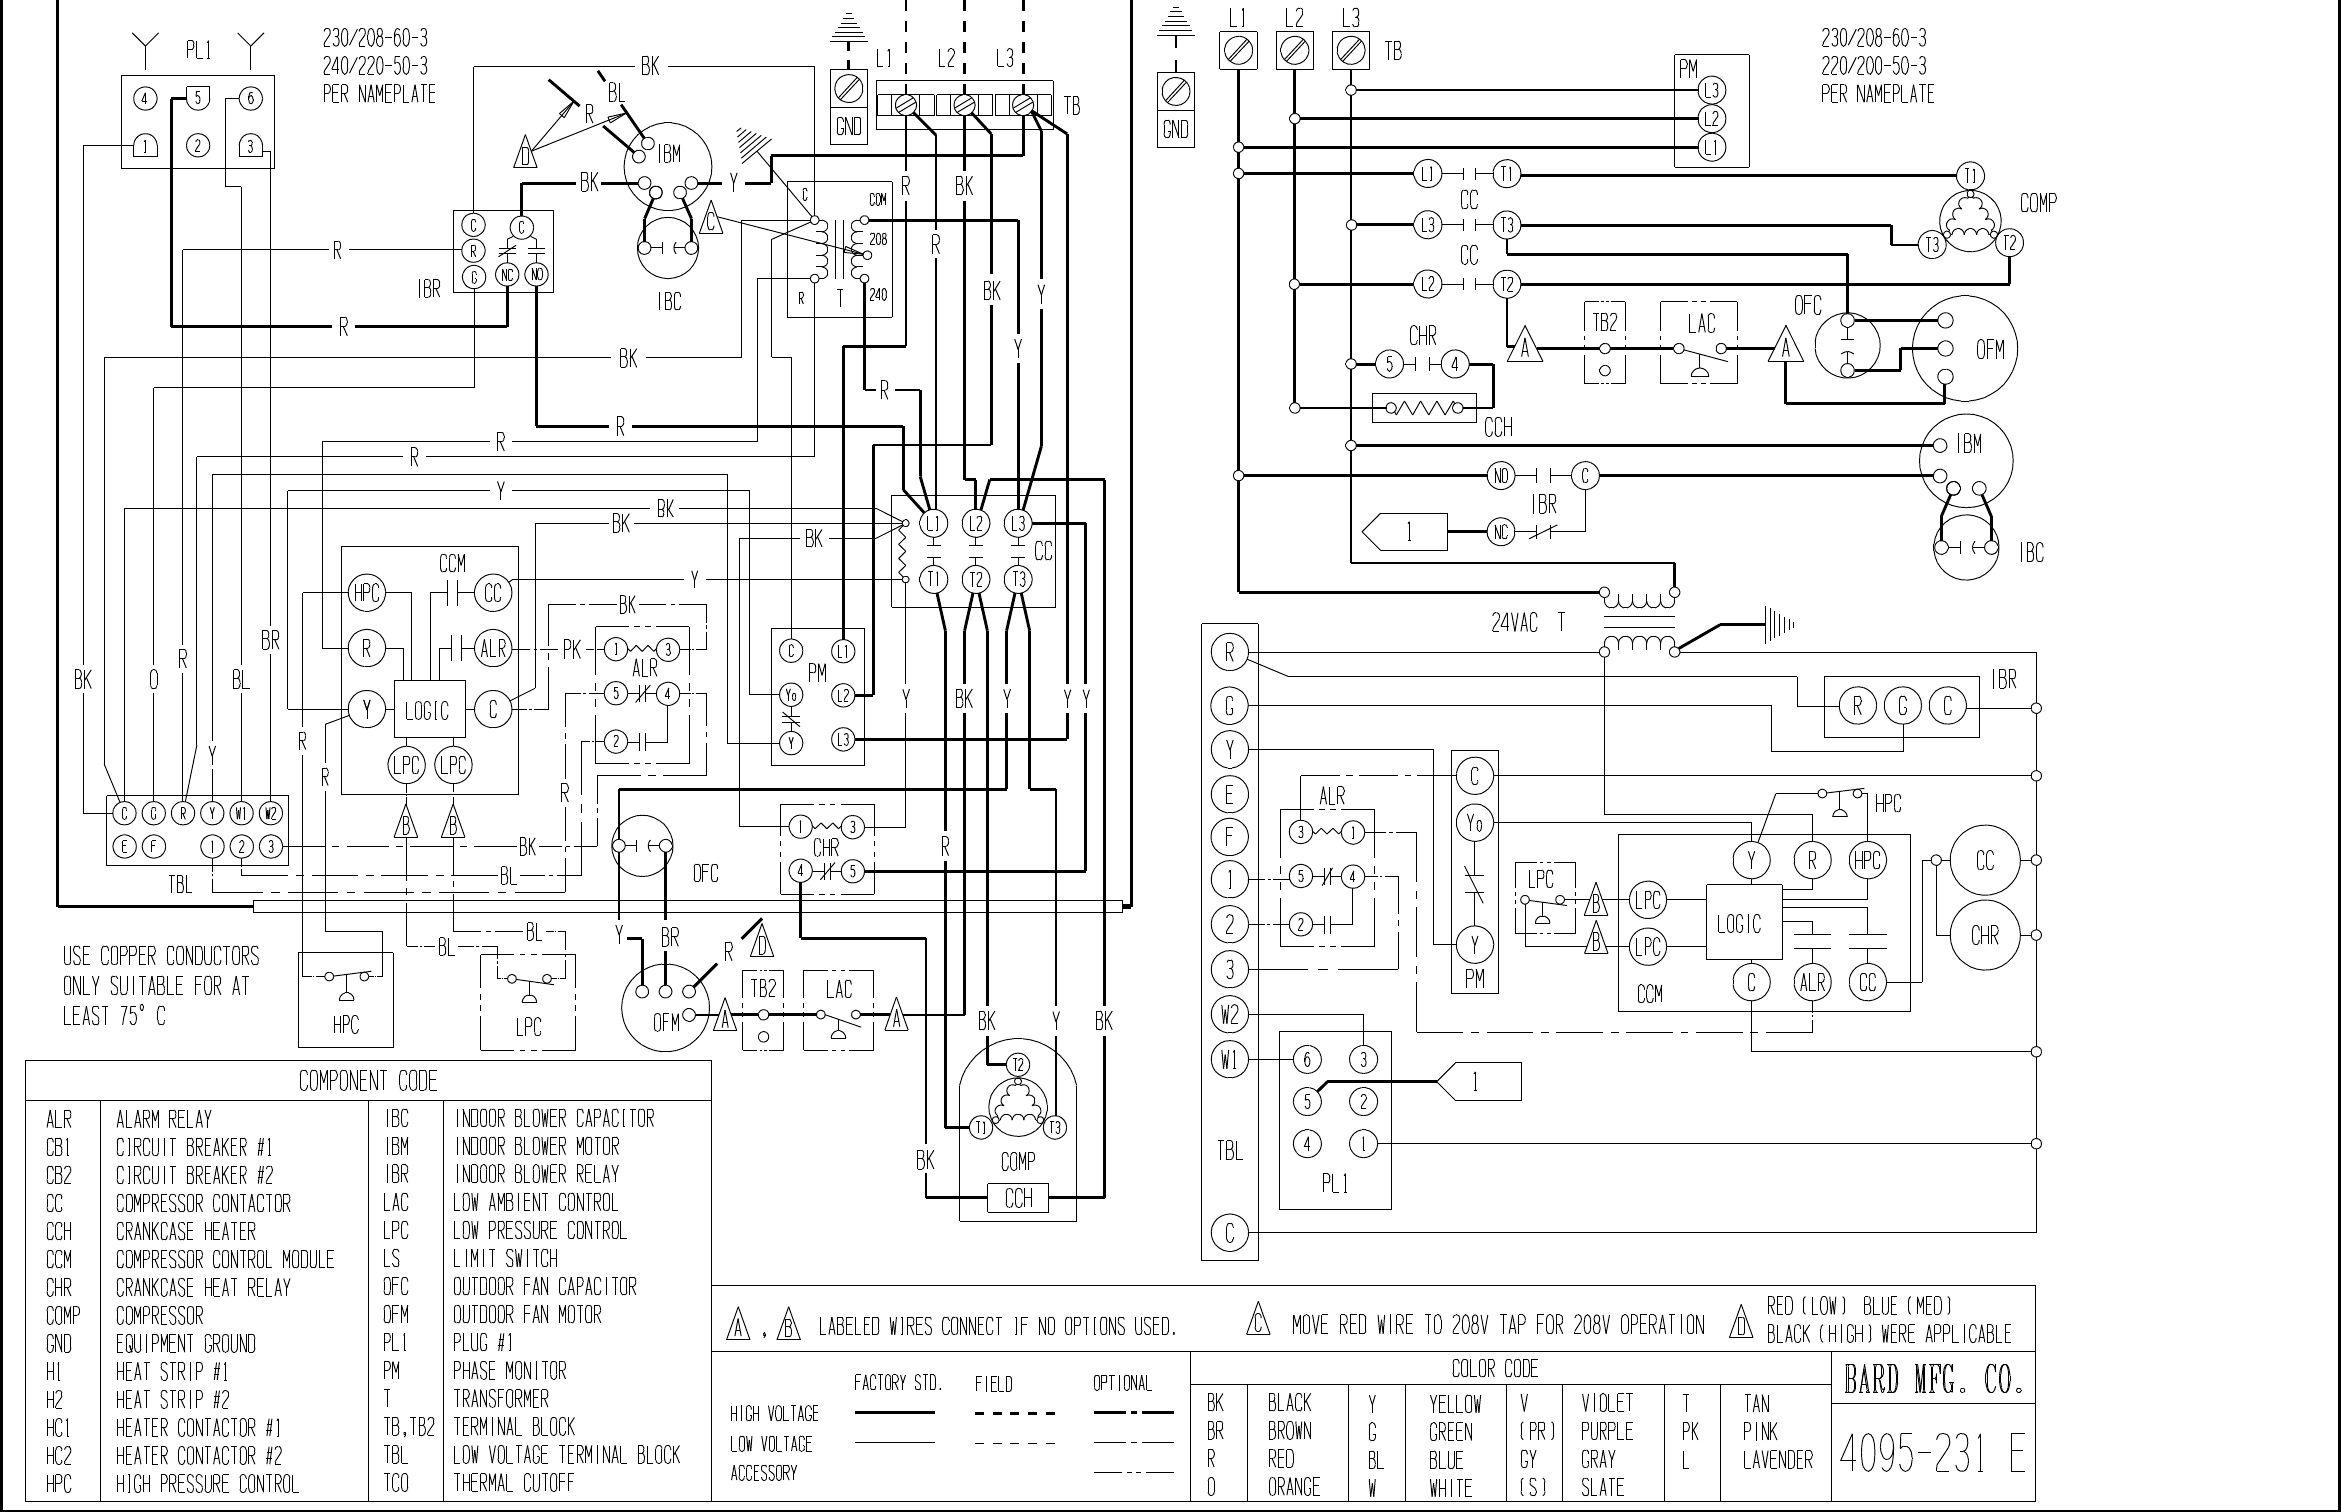 Old Fan Relay Wiring Diagram Simple furthermore 8p26w7 as well 5062502109 moreover Wiring Diagram For Mobile Home Furnace likewise Electric Furnace Wiring Diagrams E2eb 015ha. on air handler fan relay wiring diagram